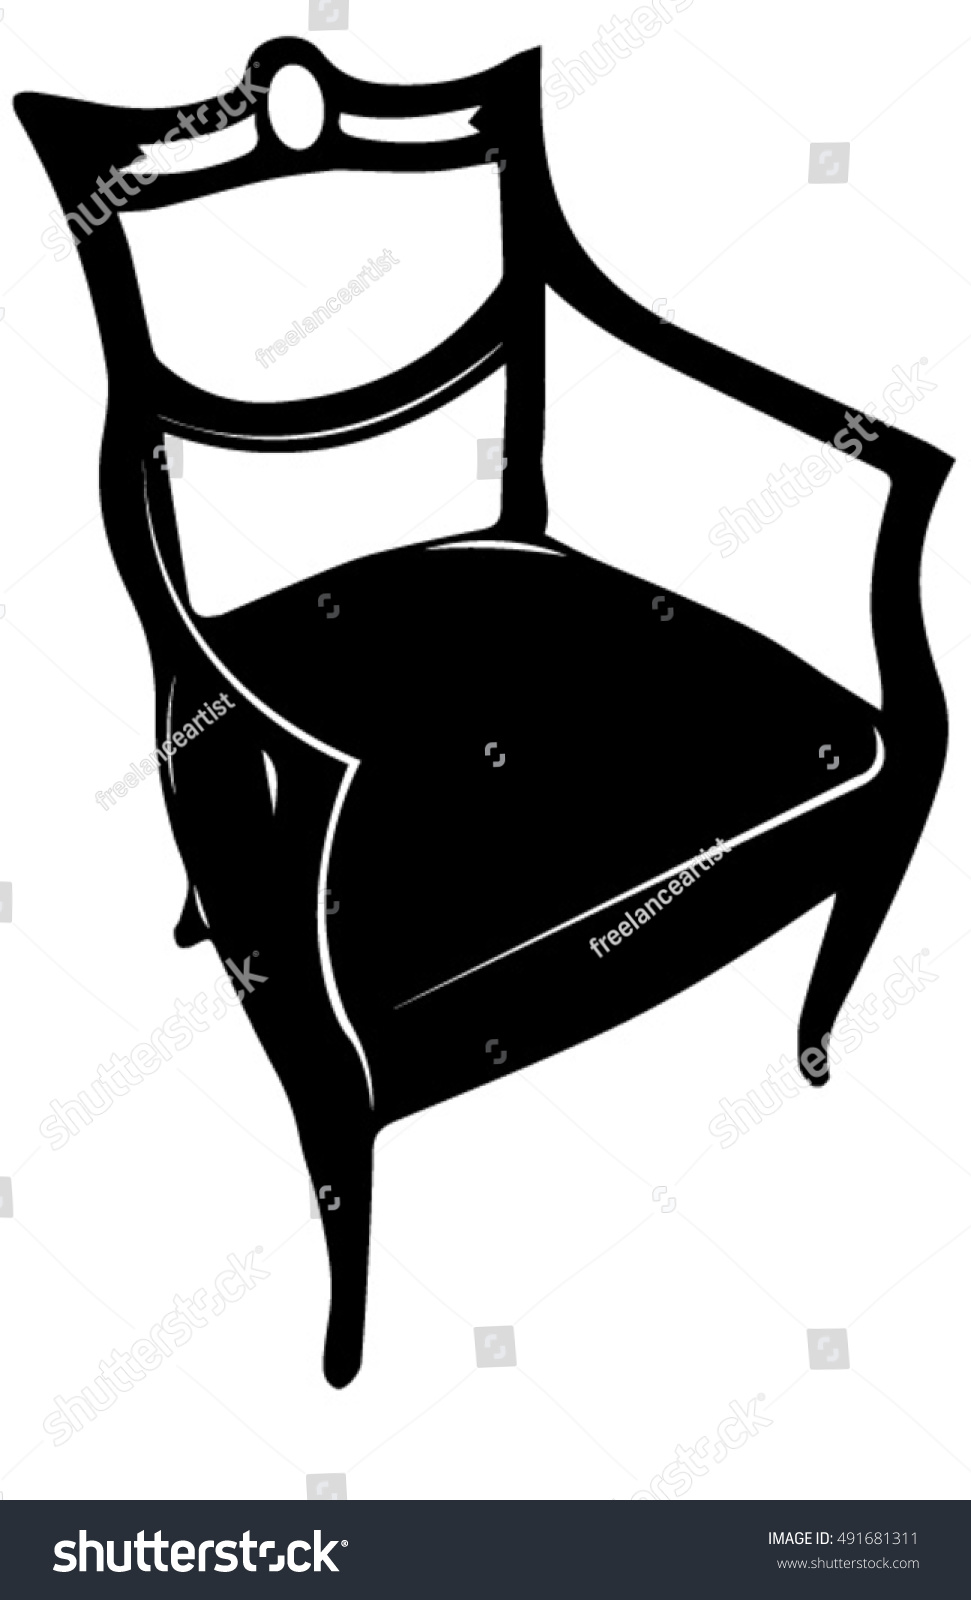 Antique chair silhouette - Antique Chair Silhouette